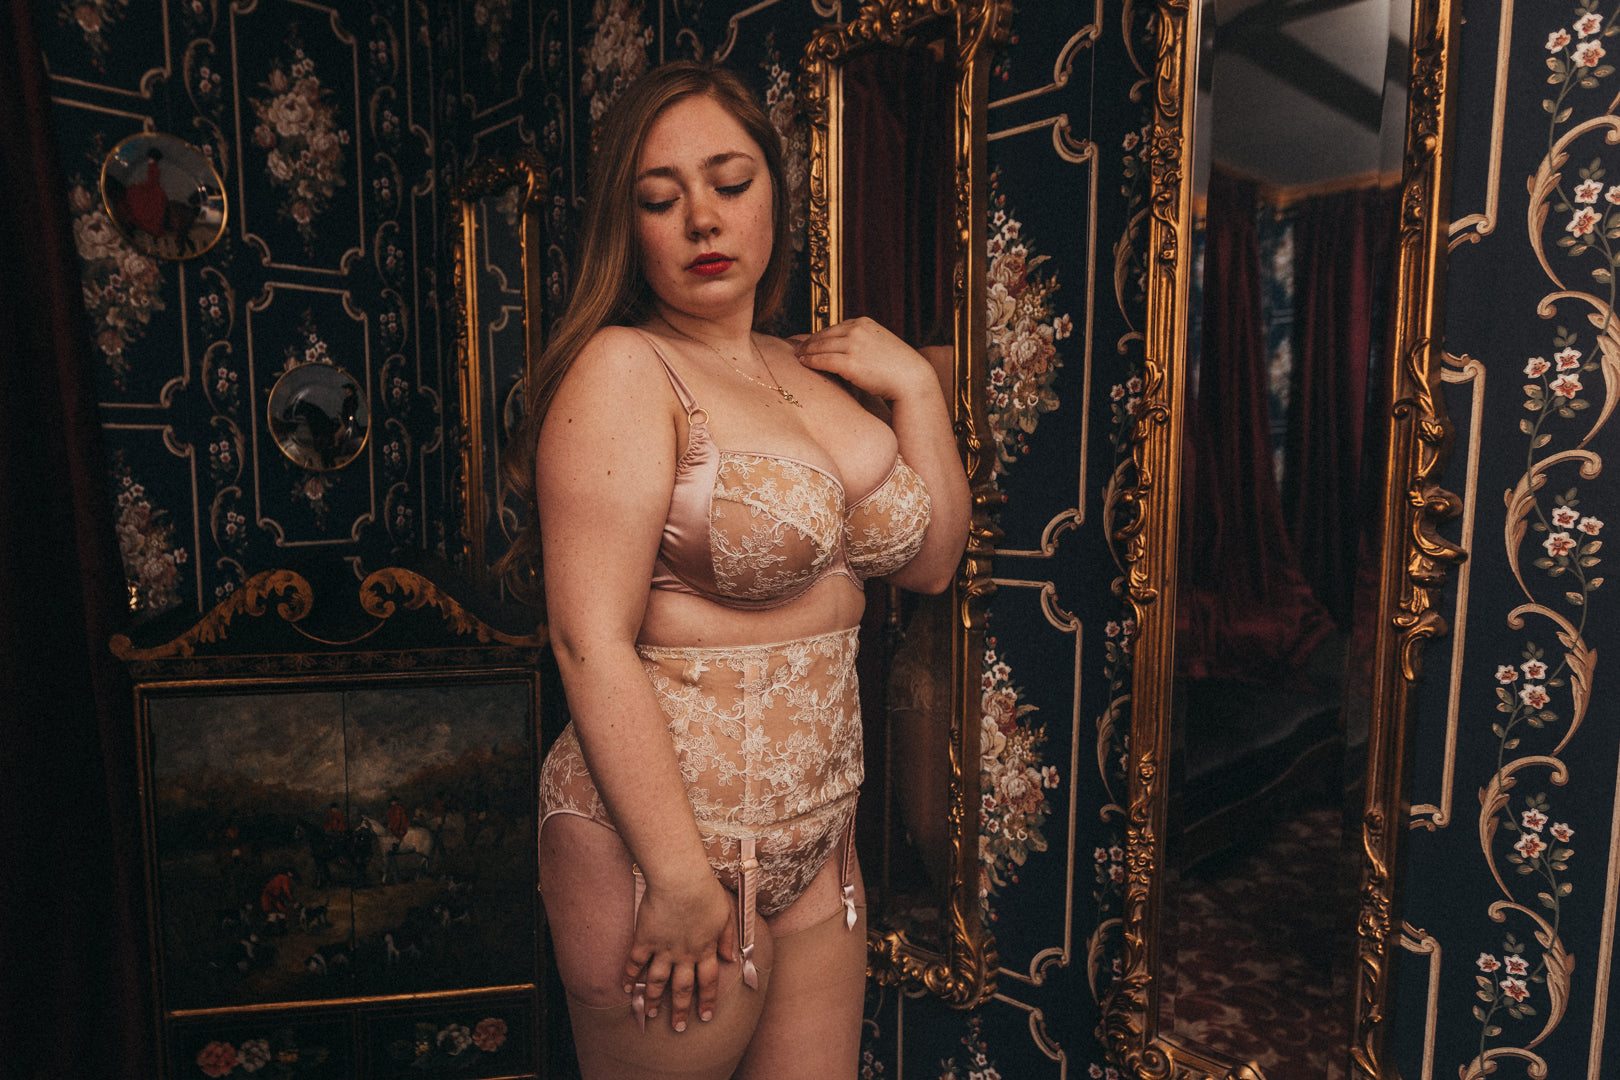 d70efd95d03 Rose Juniper Wears the Serena Rose Collection | Harlow & Fox